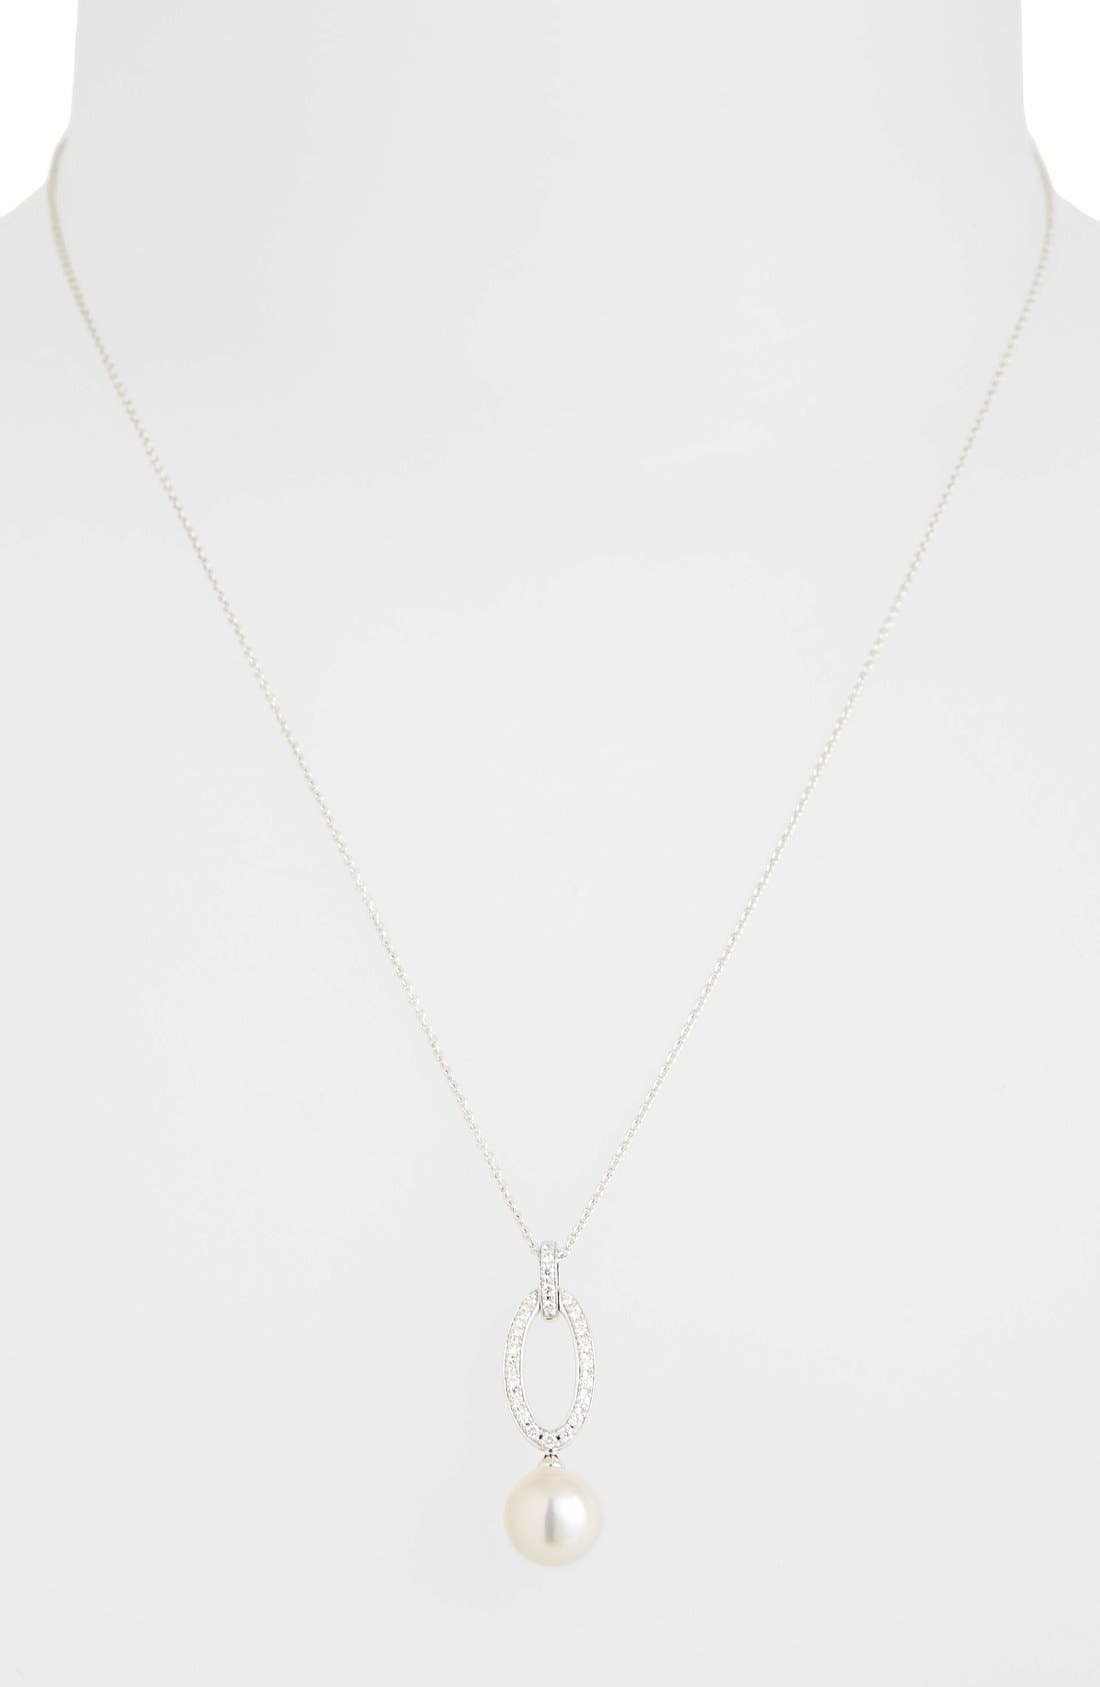 Diamond & Akoya Cultured Pearl Pendant Necklace,                             Main thumbnail 1, color,                             WHITE GOLD